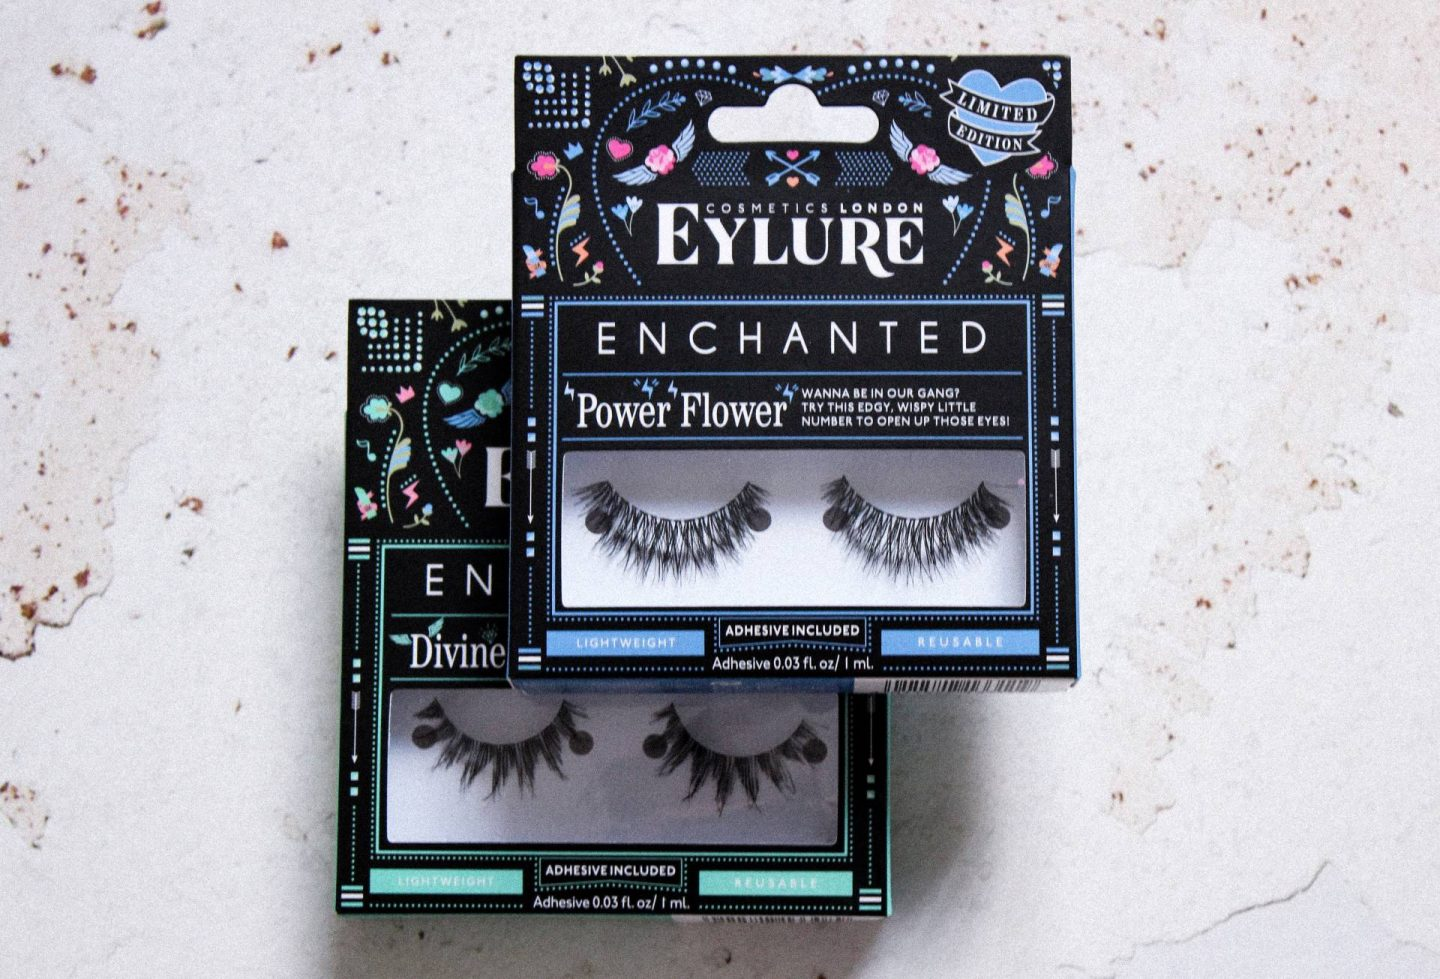 New Eylure Enchanted lashes